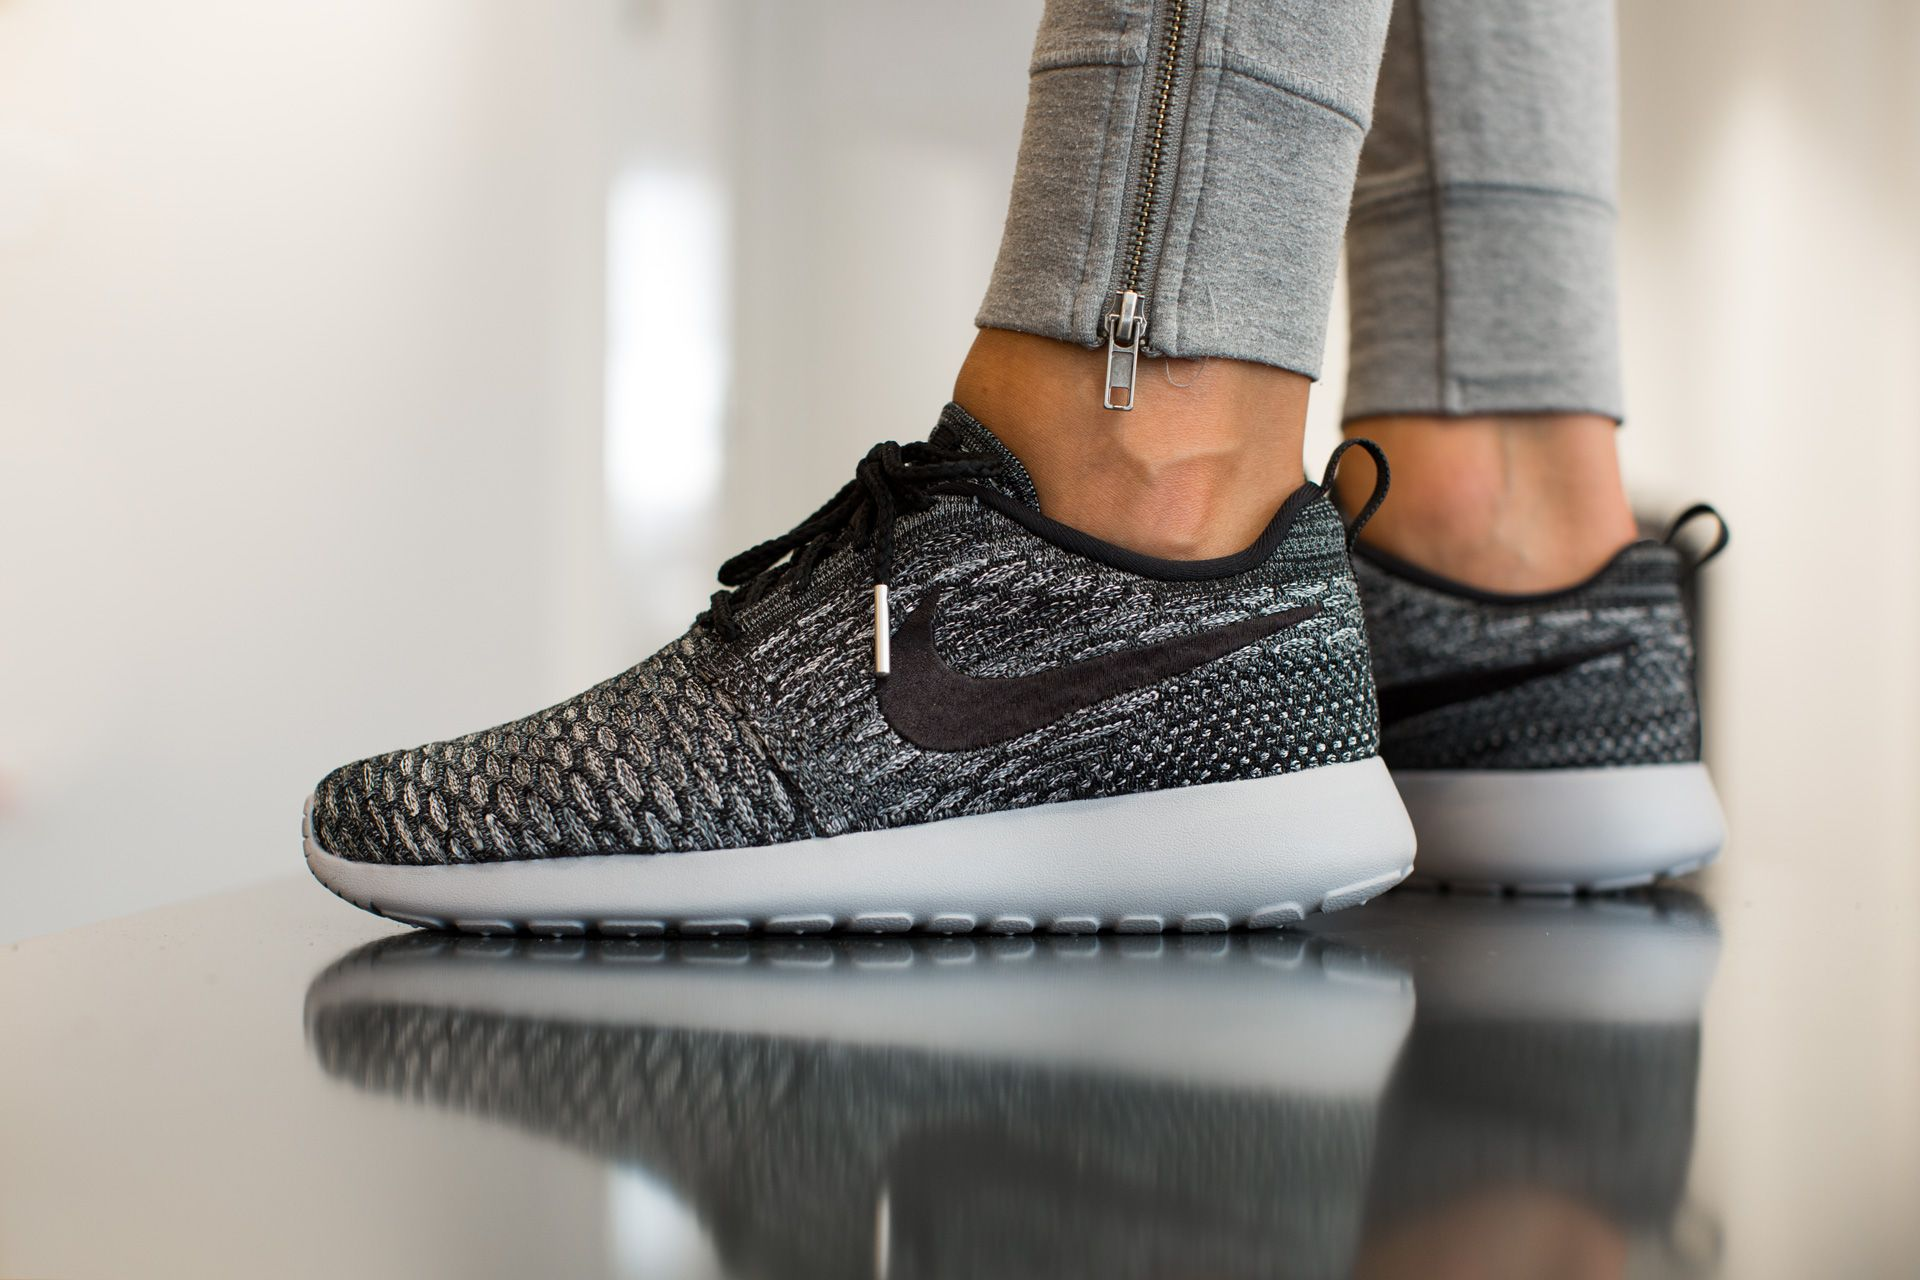 fashion shoes for women Preiswert Nike Roshe One Weiß